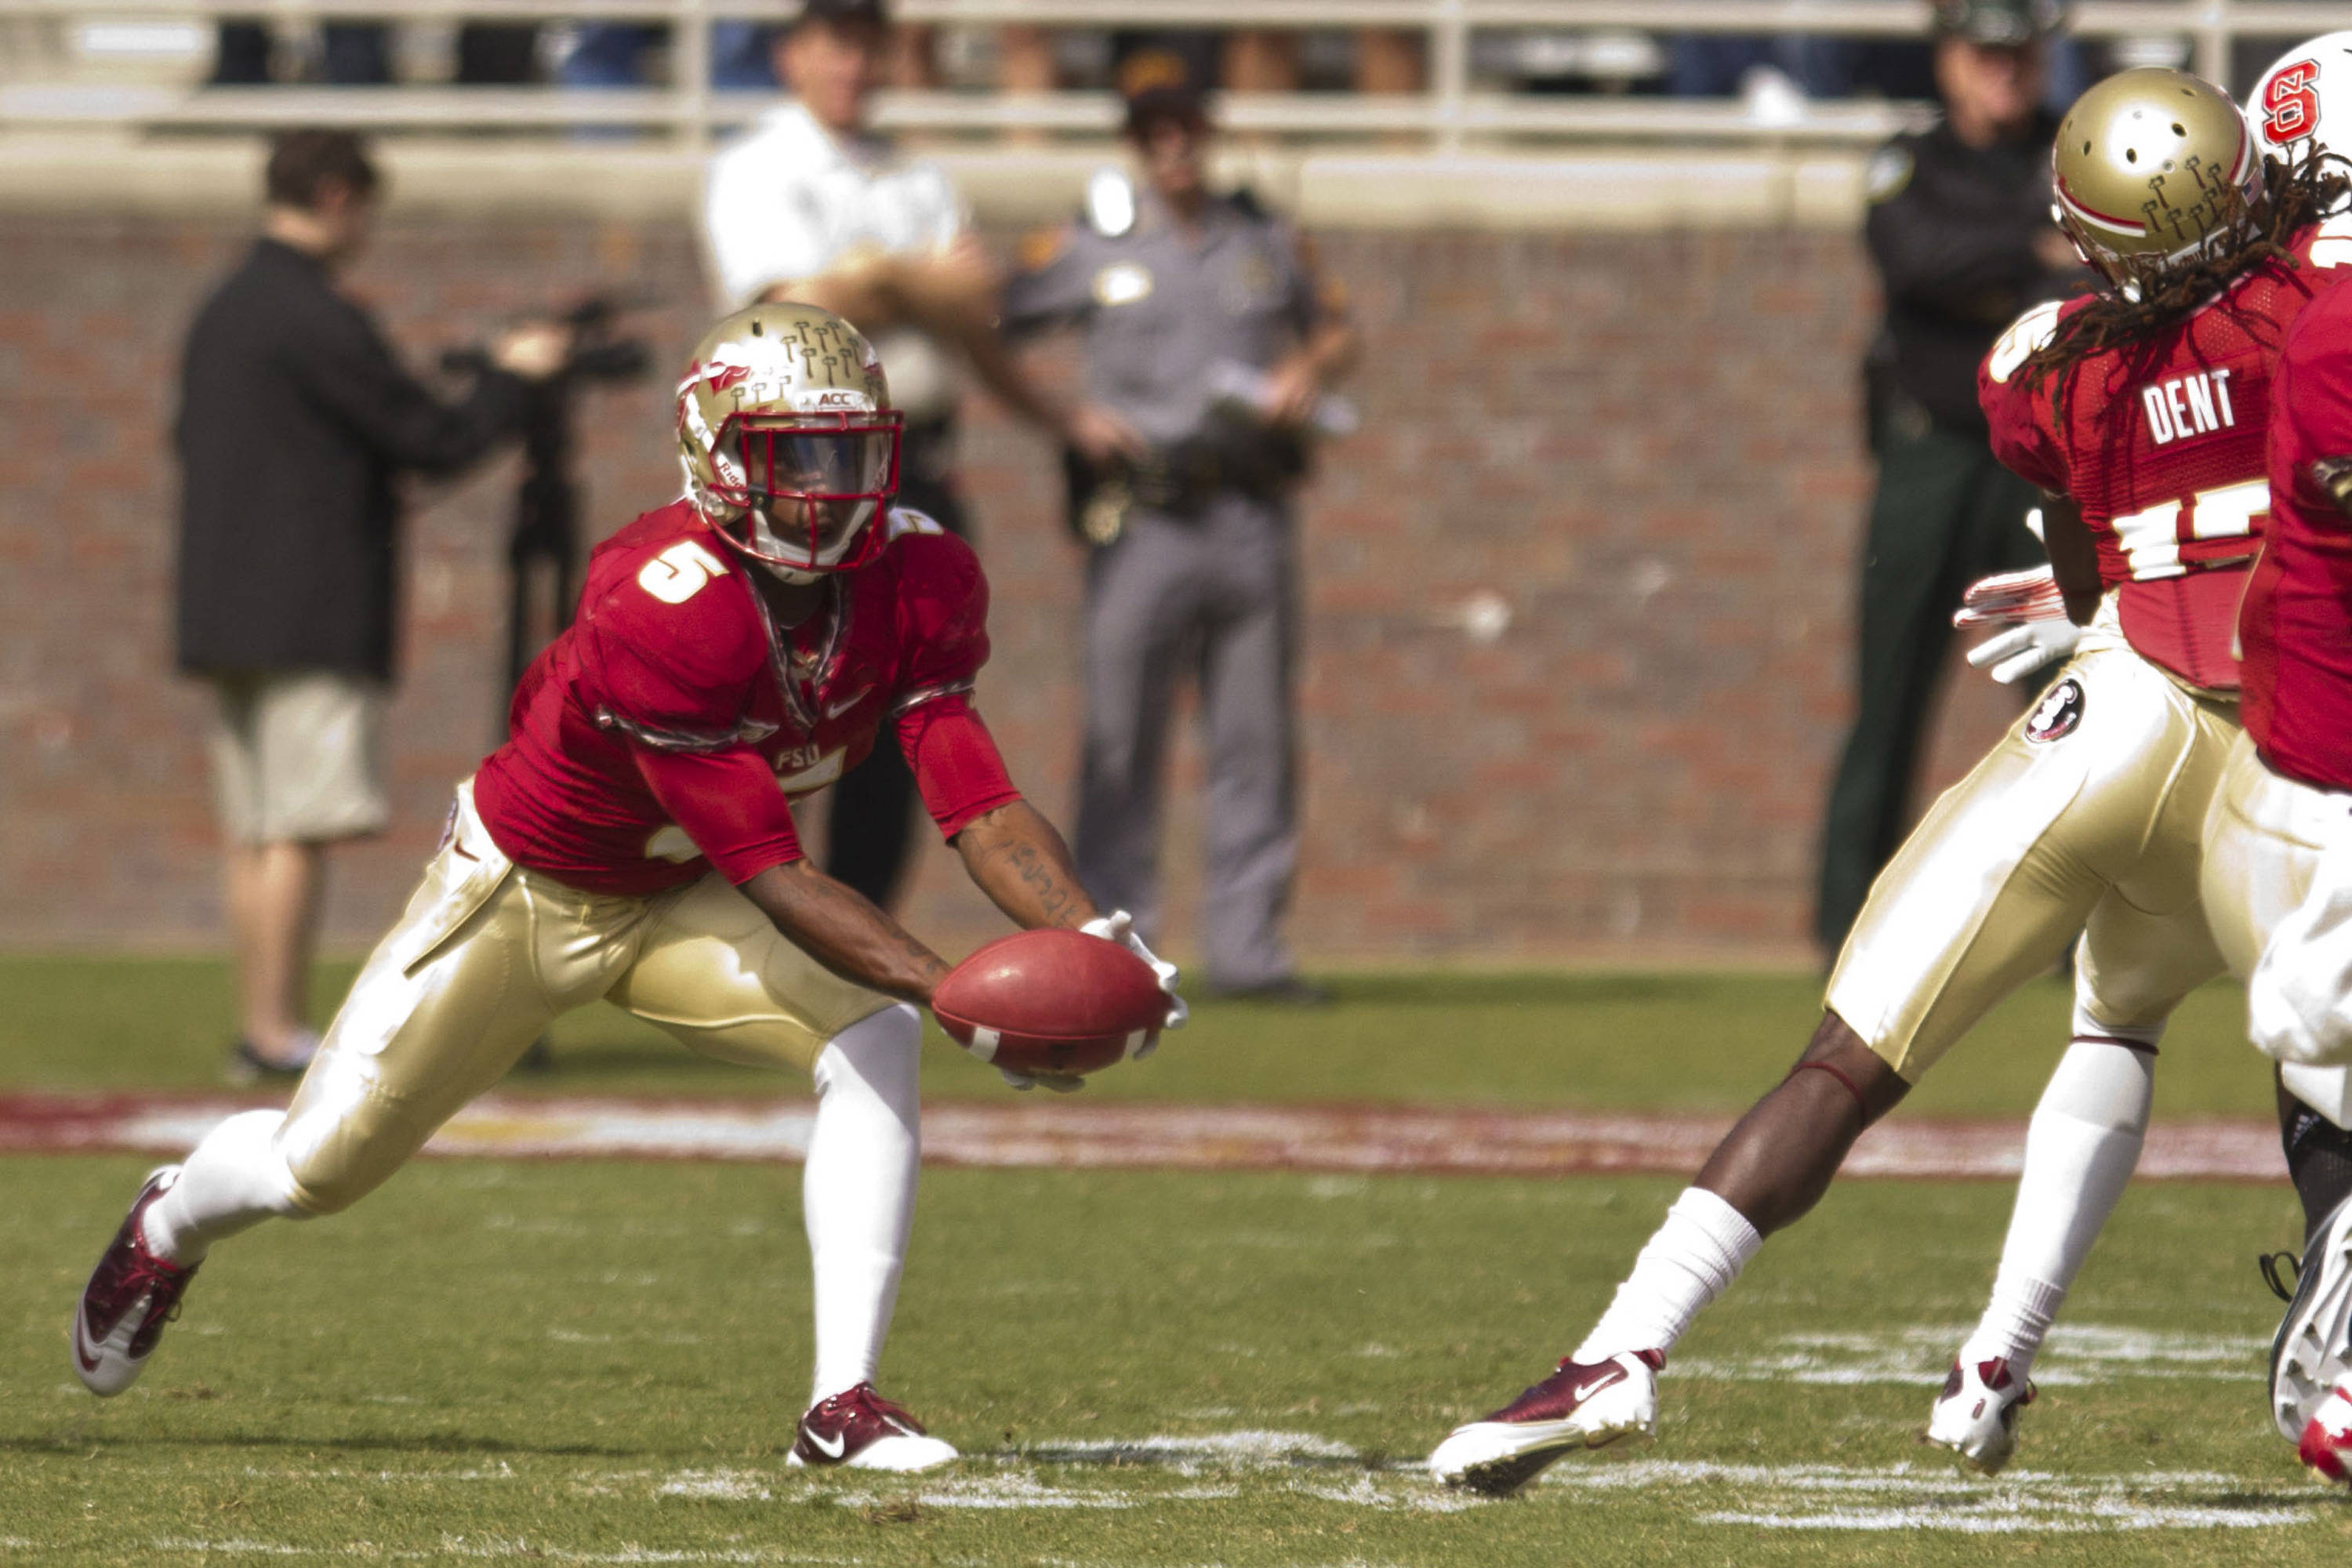 Greg Reid (5) catches a punt on the tips of his fingers during the football game against NC State on October 29, 2011.